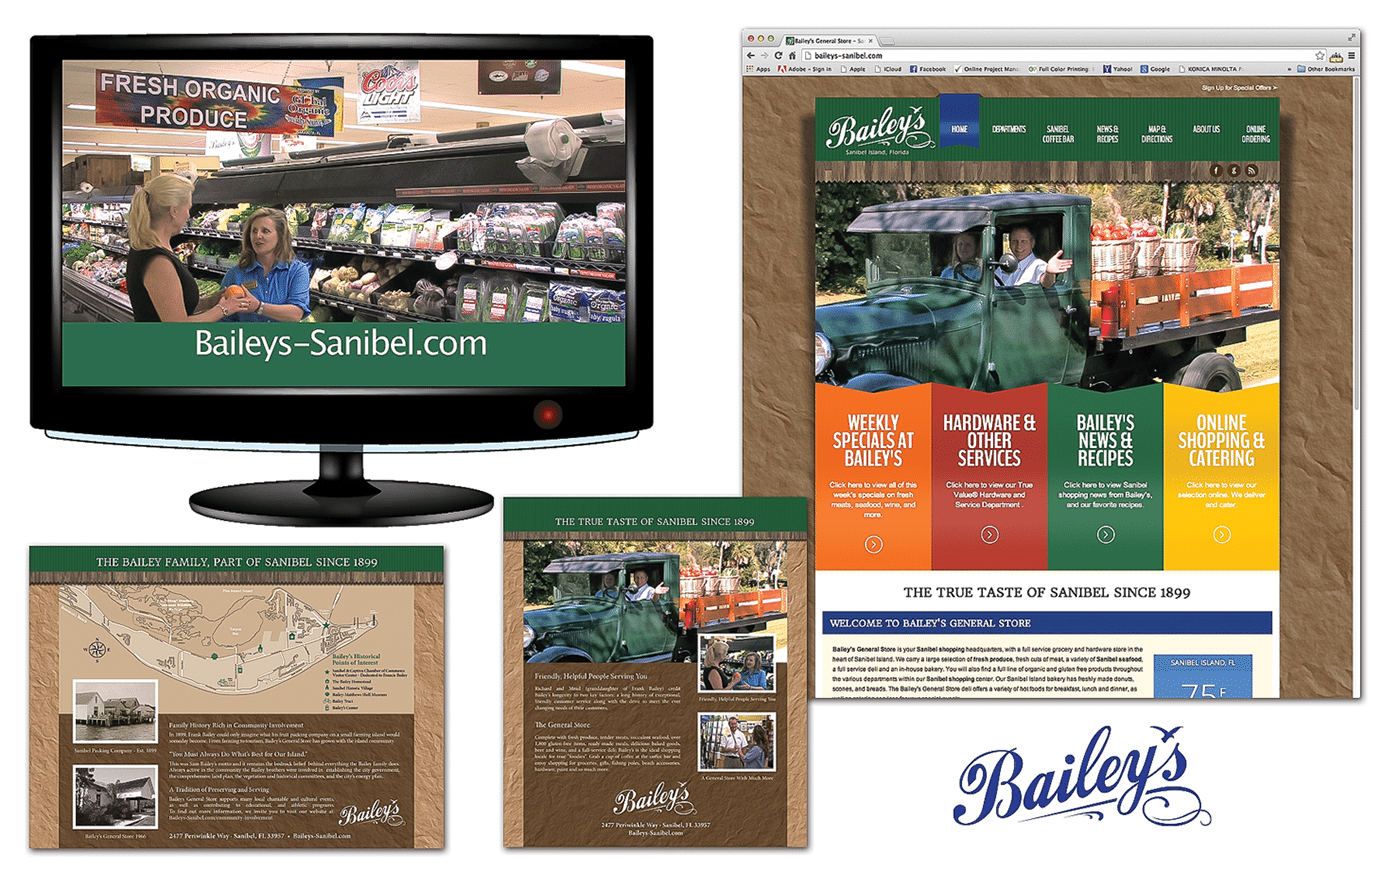 Retail Advertising Agency Agency Creative for Bailey's General Store